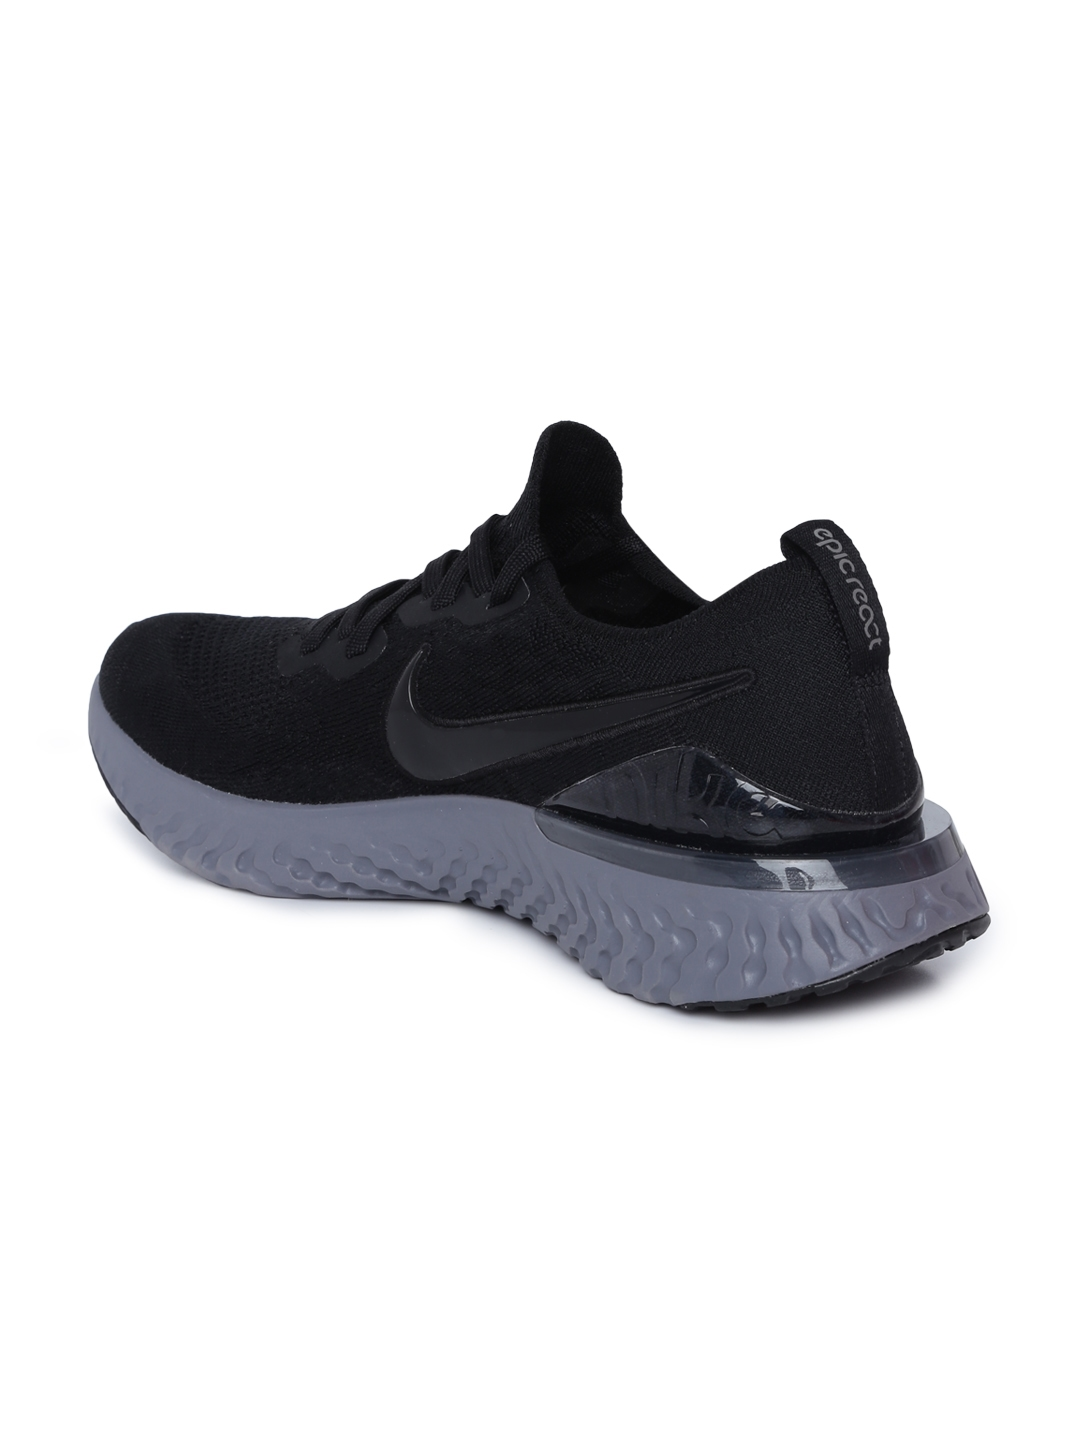 1a830441f97d7 Buy Nike Men Black EPIC REACT FLYKNIT 2 Running Shoes - Sports Shoes ...